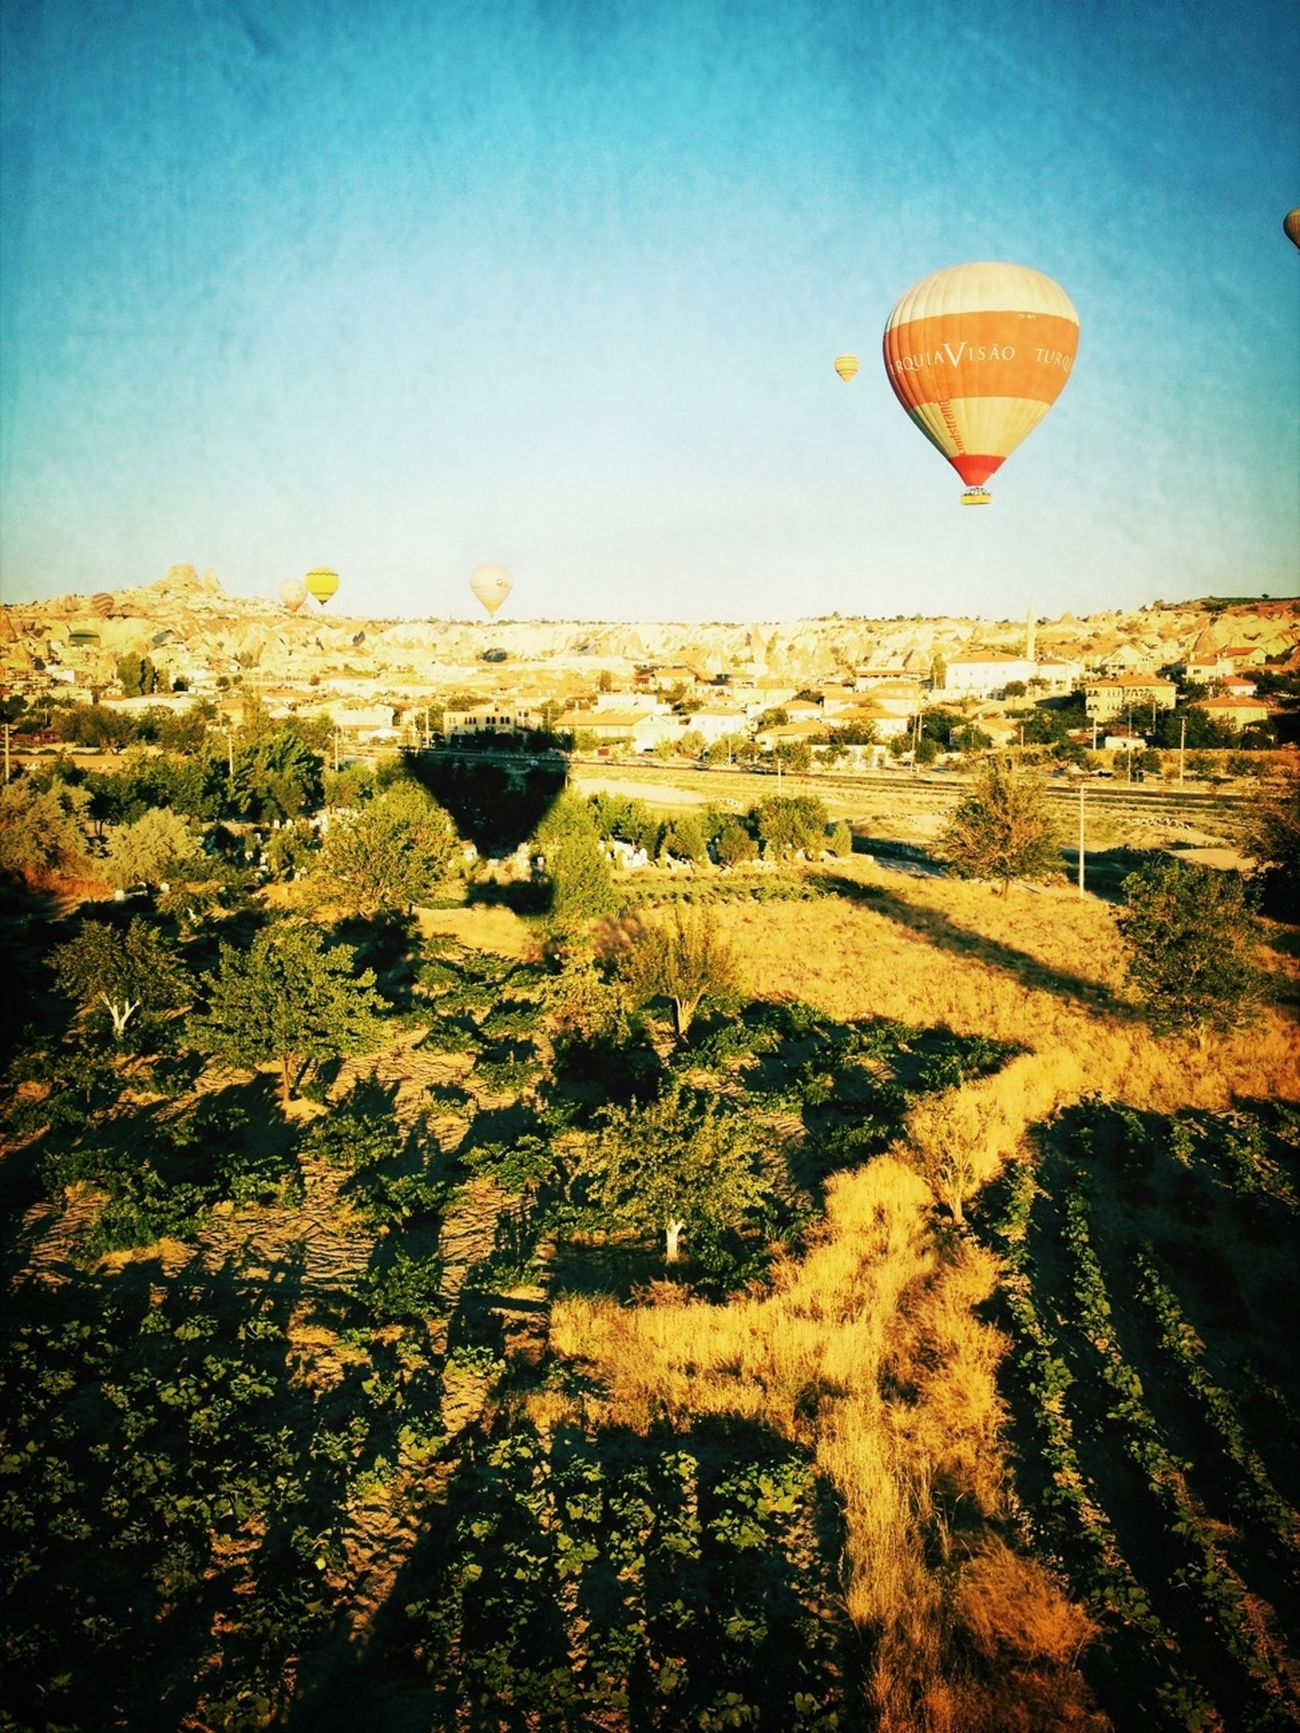 Relaxing Hot Air Balloons Fresh Air Eye4enchanting